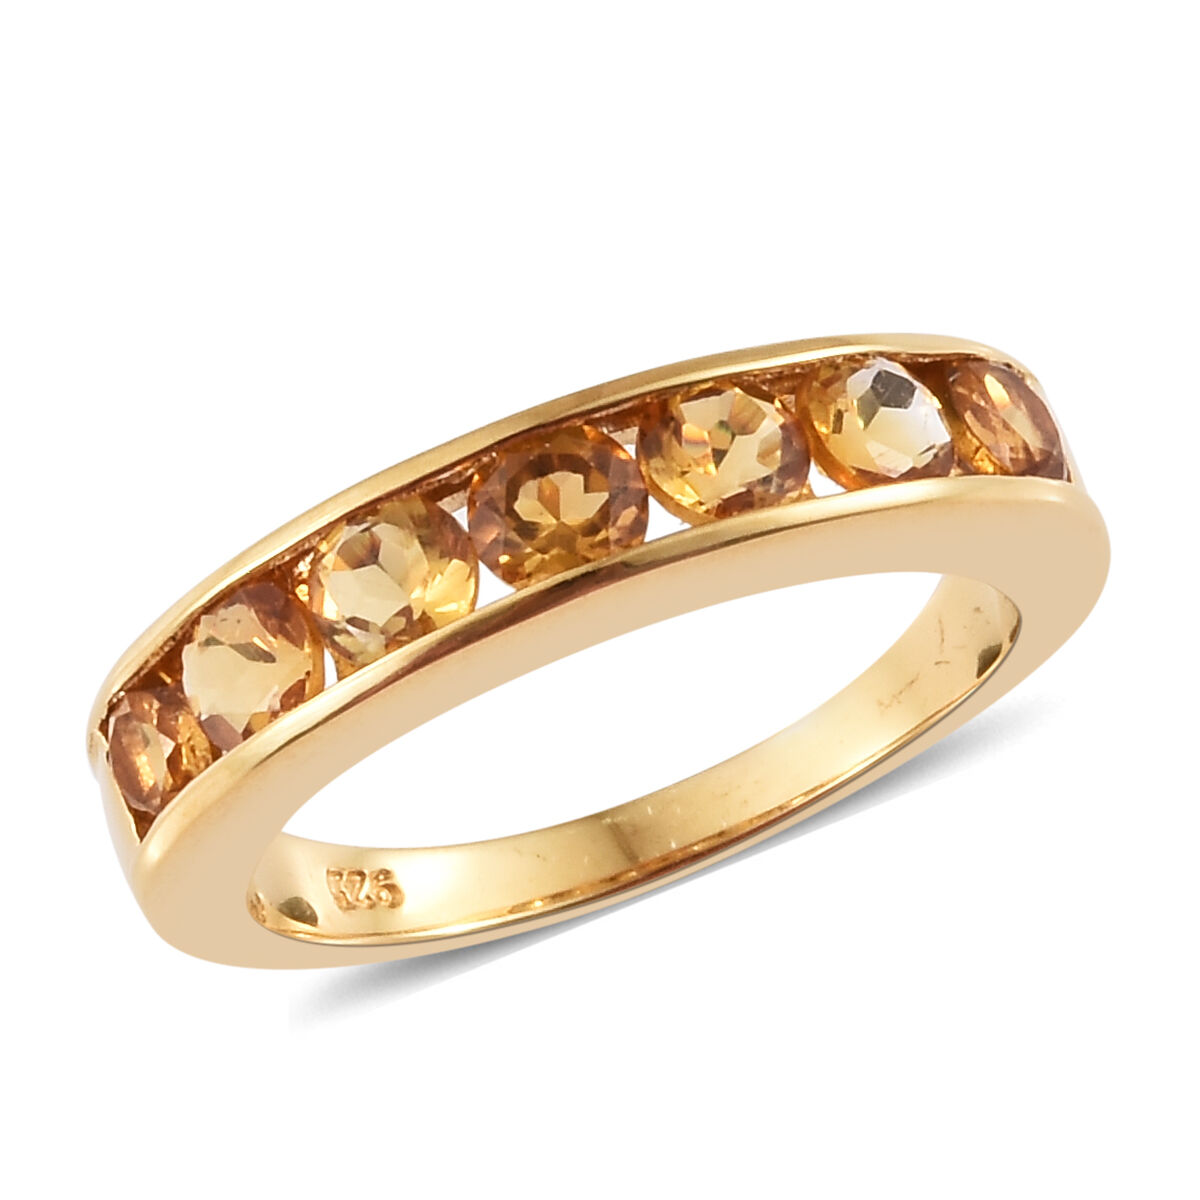 1 Carat Brazilian Citrine Eternity Band Ring In Gold